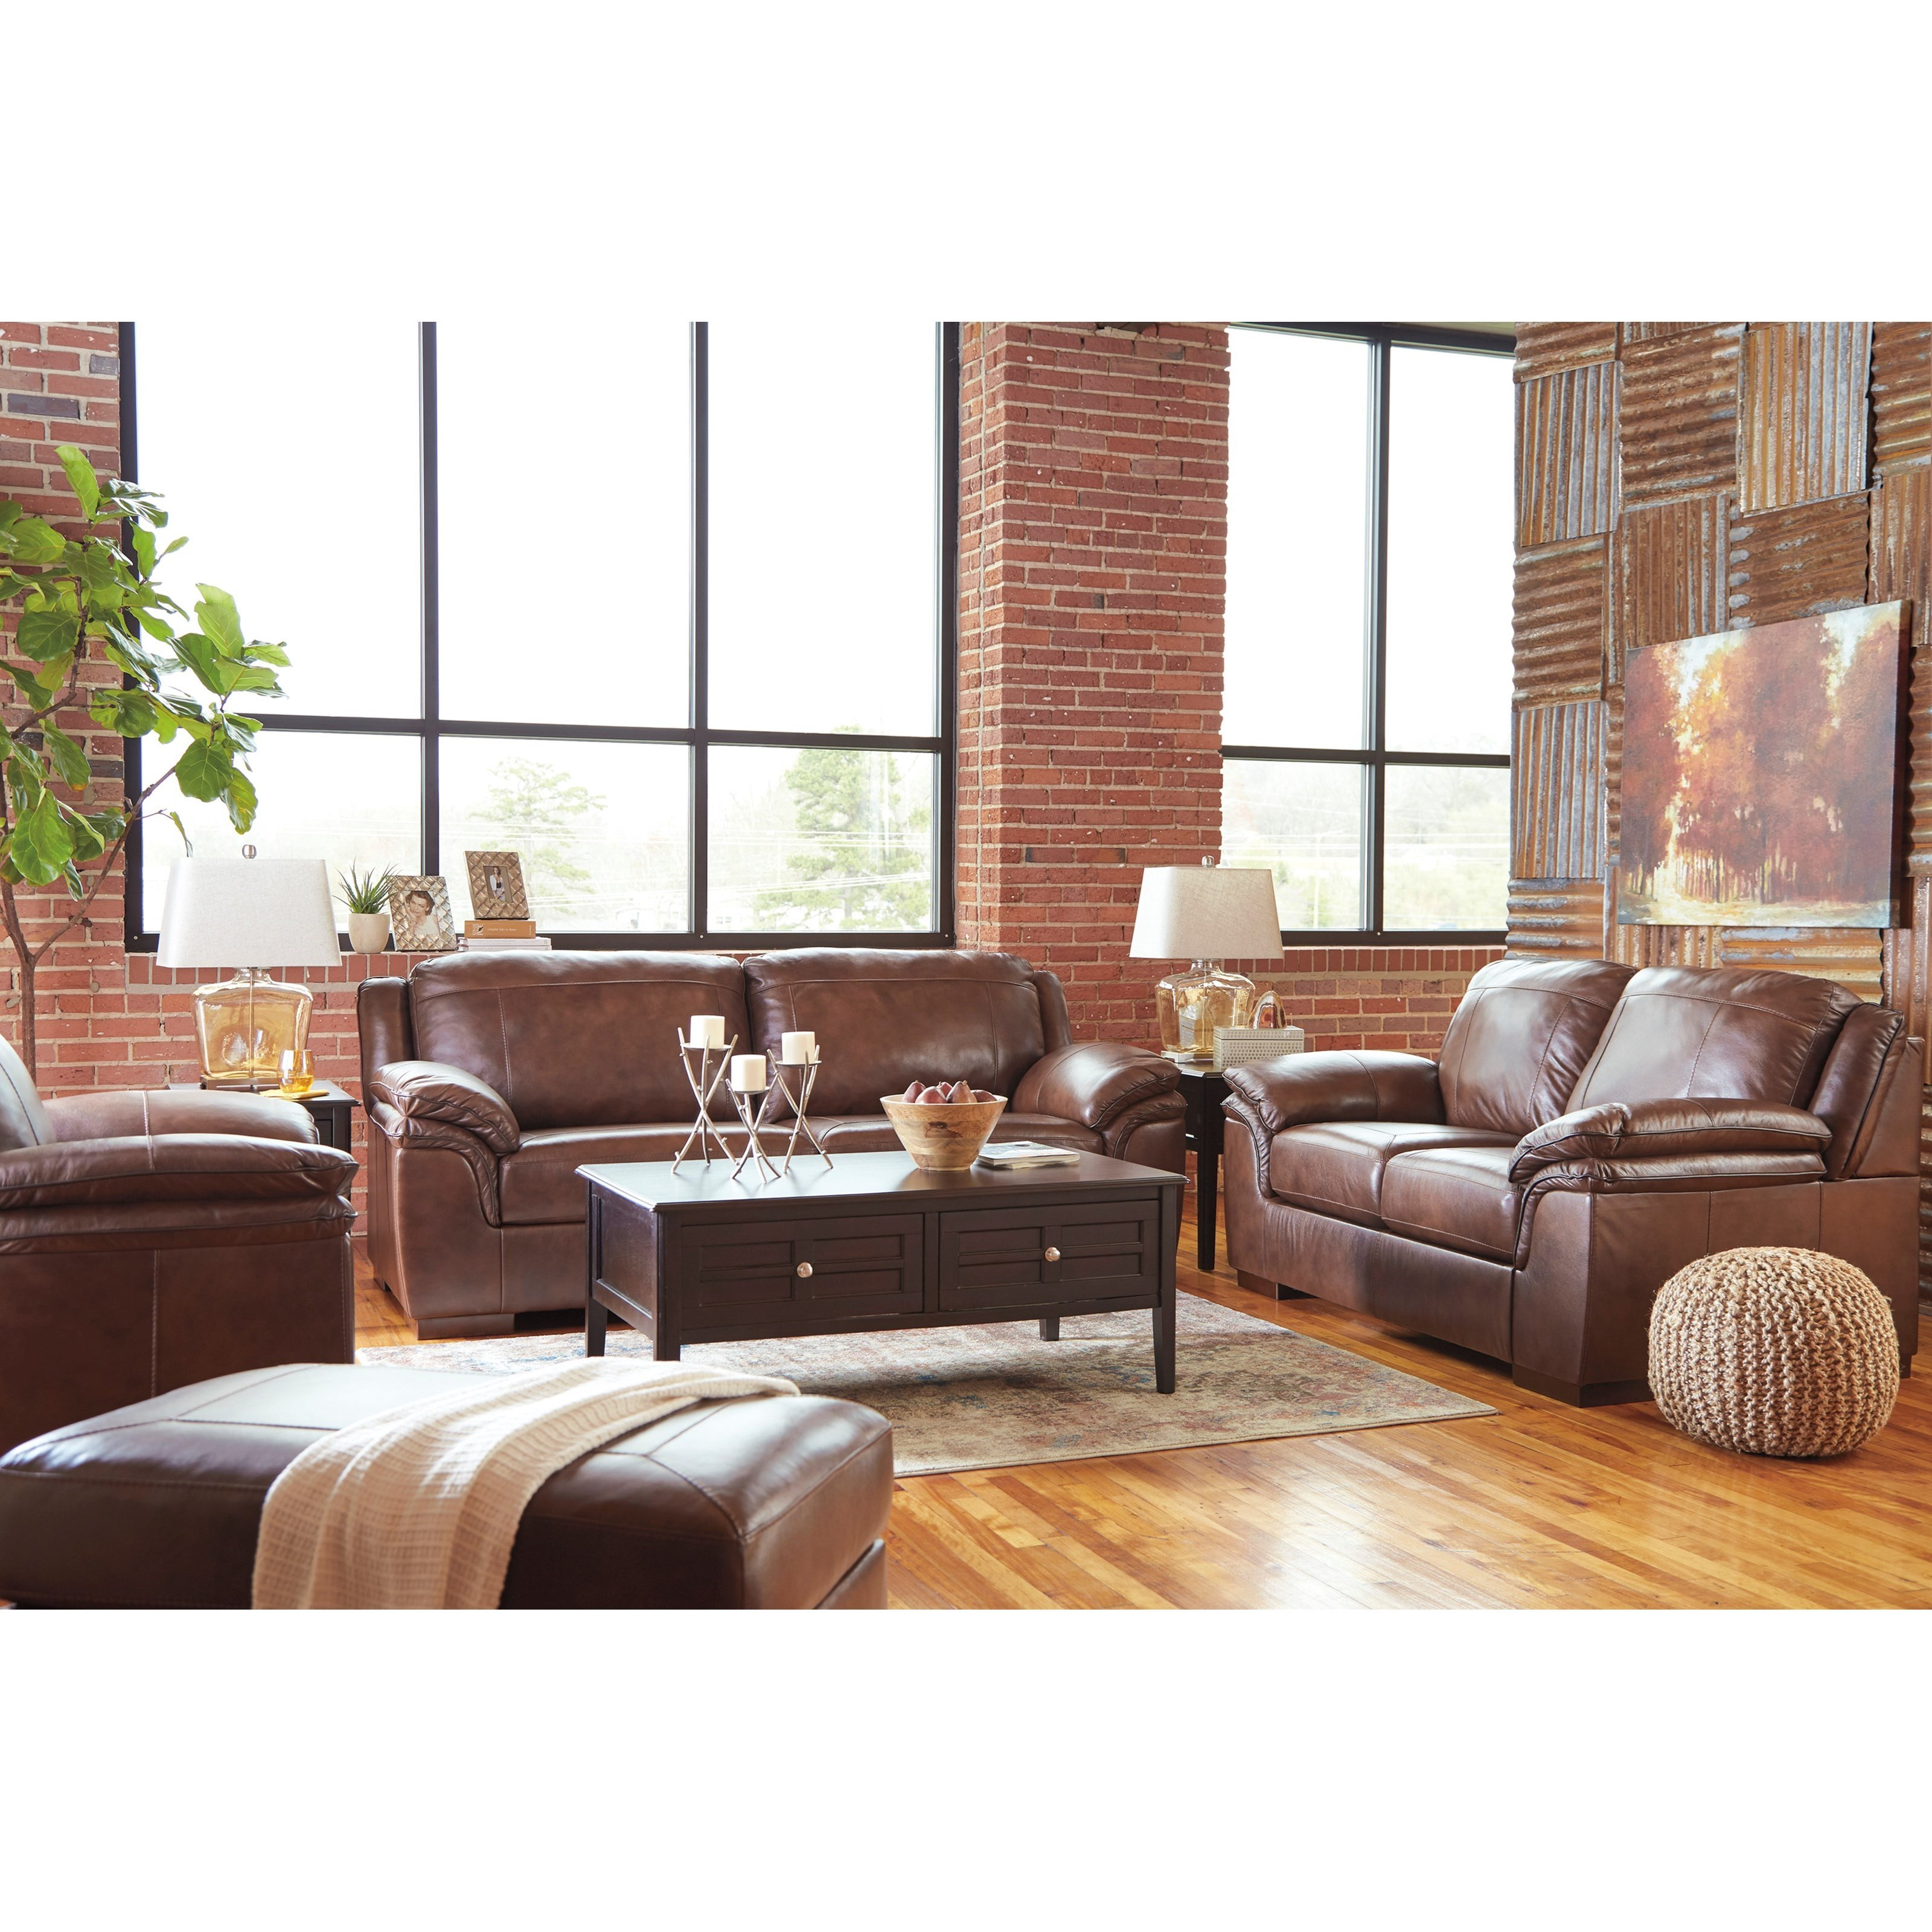 ashley living room photos of rooms with leather furniture signature design by islebrook stationary group islebrookstationary